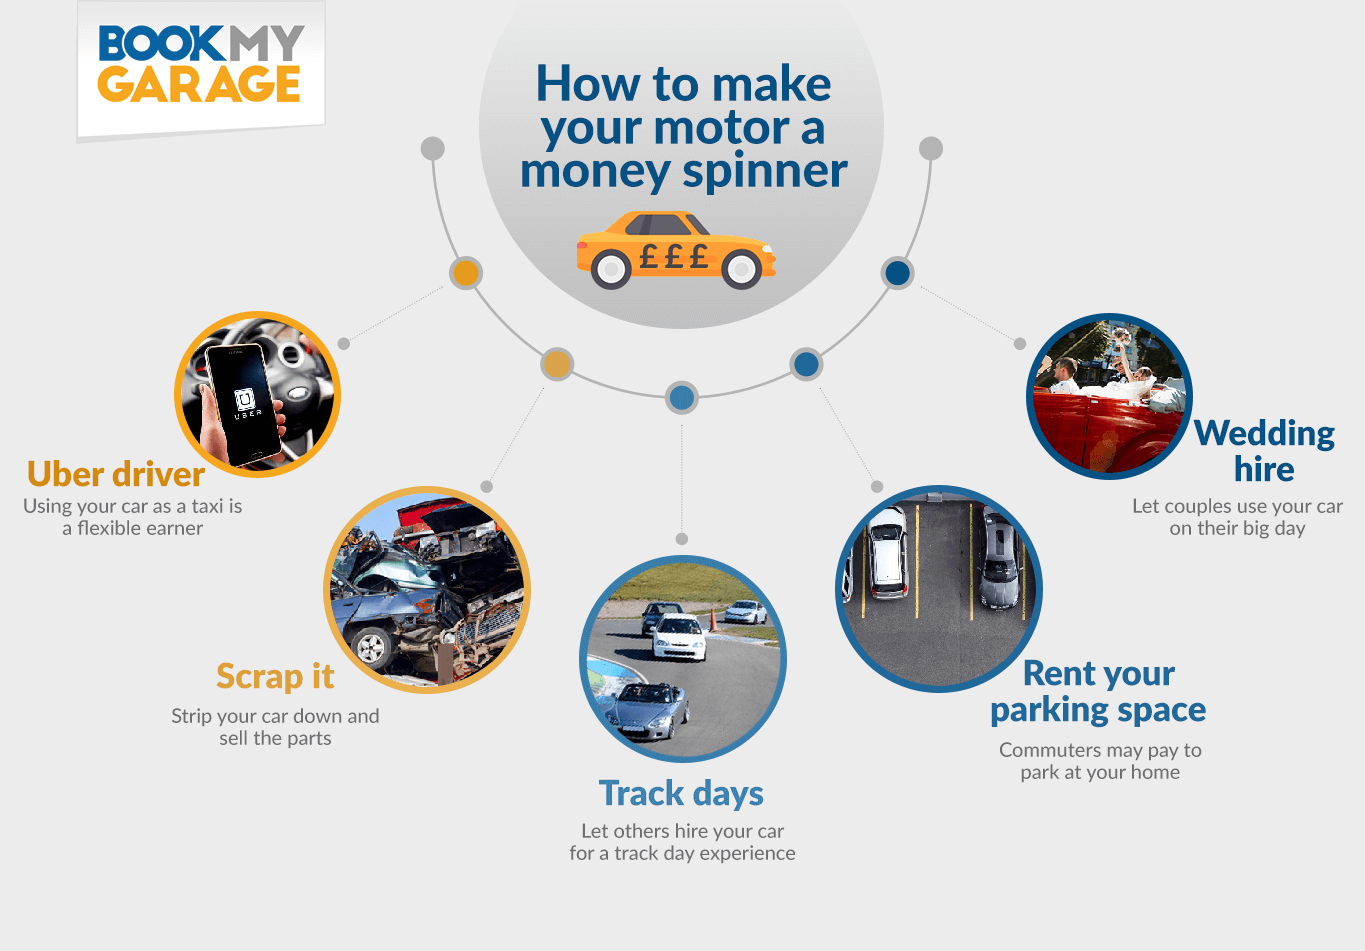 BookMyGarage infographic showing ways to make money from your car including scrapping it yourself, hiring it out for weddings and track days and renting your parking space